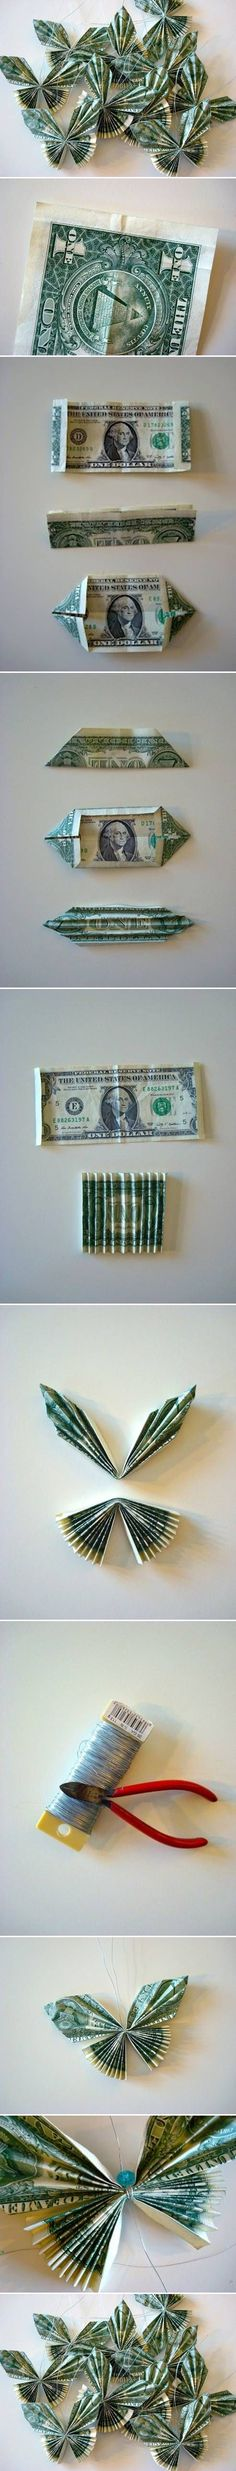 {DIY Dollar Bill Butterfly} - Cool way of giving someone cash for a gift!